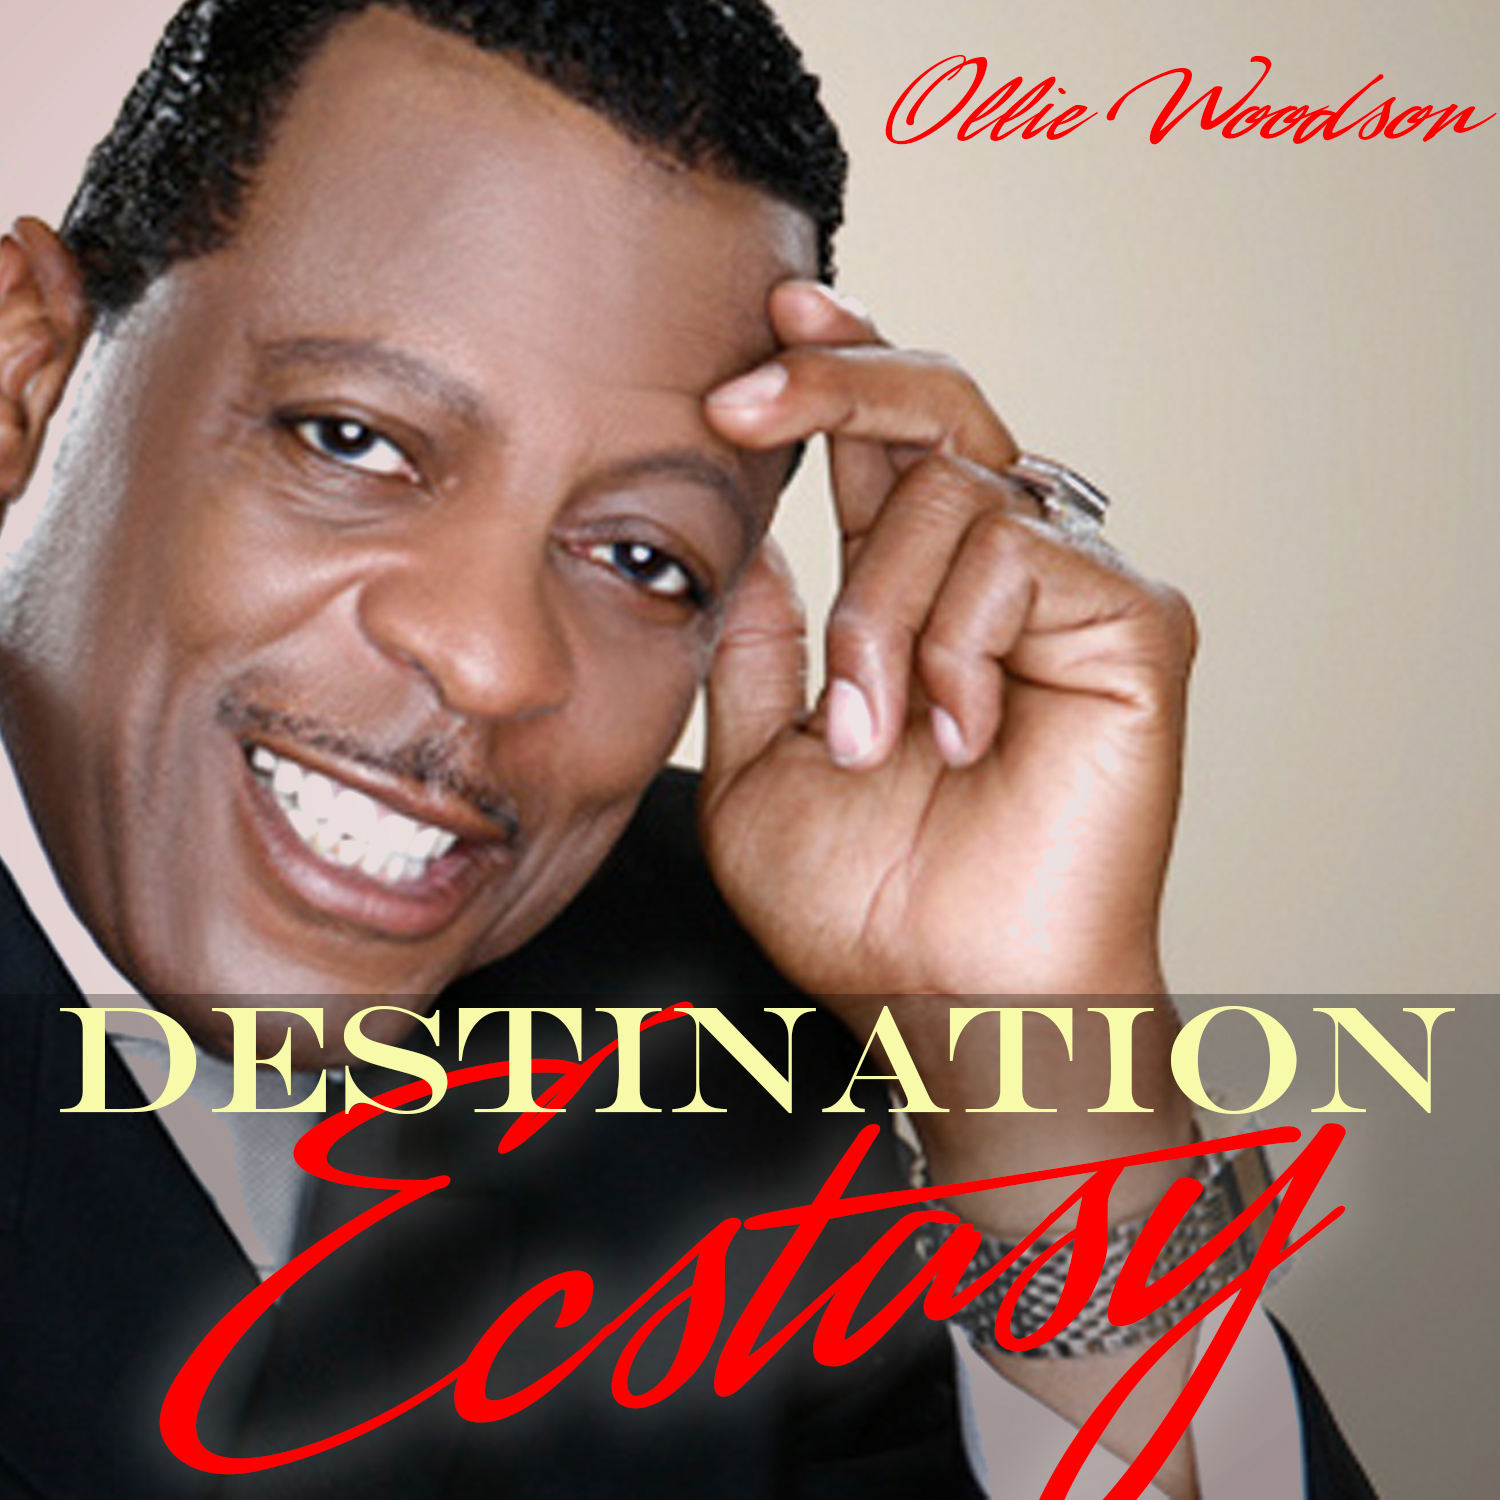 Ollie destination ecstasy cd cover